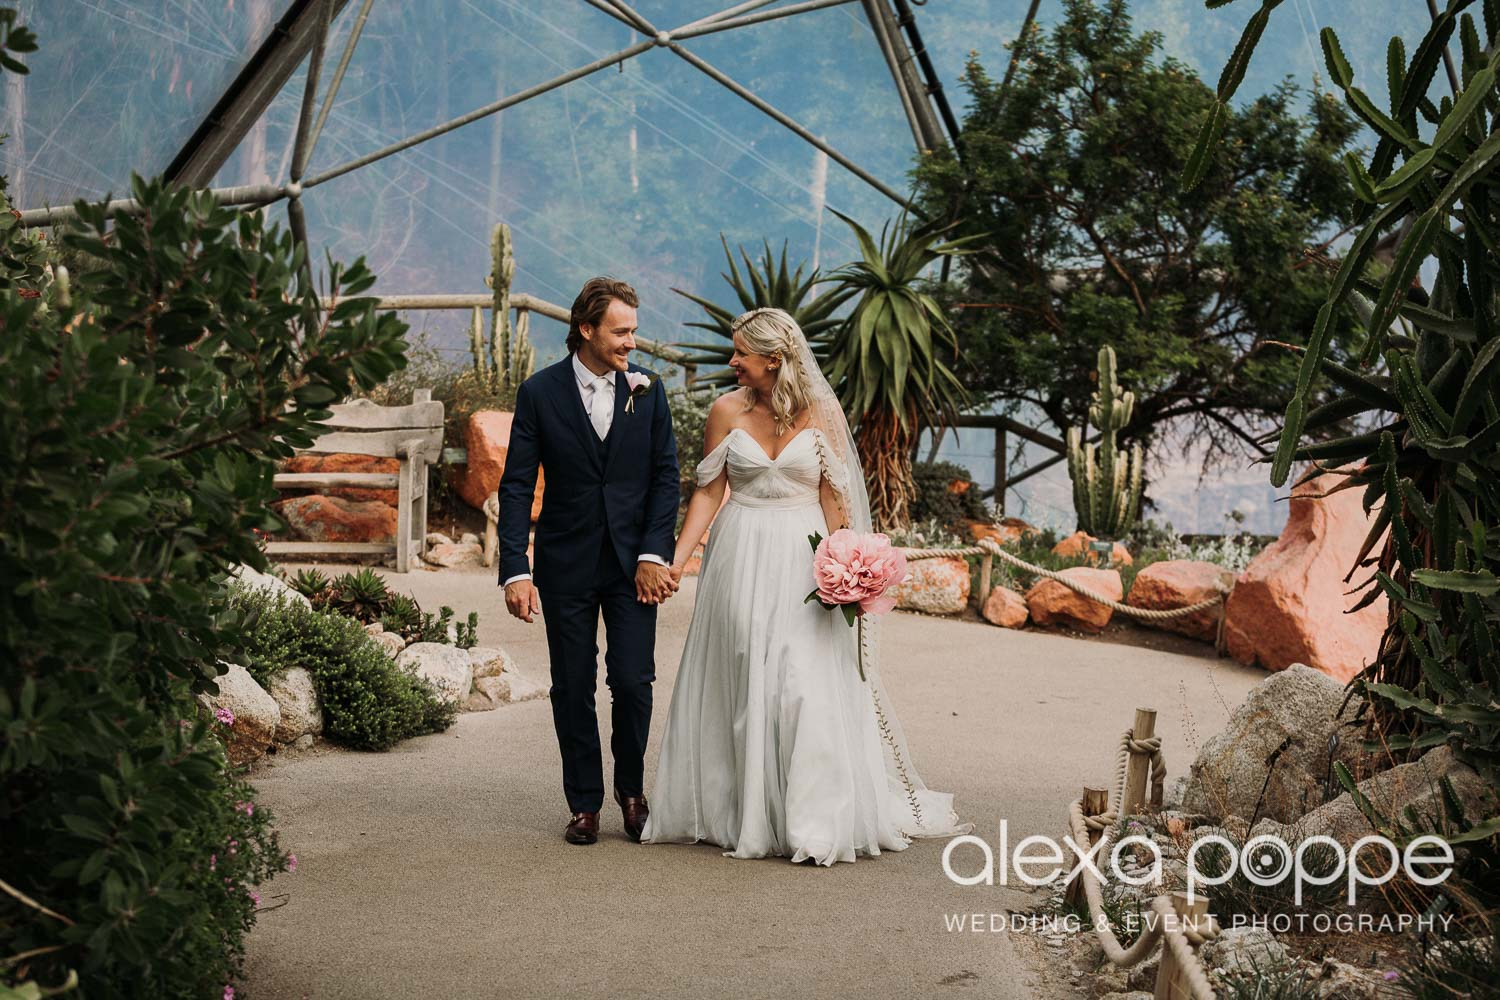 VA_wedding_edenproject_carnglaze_57.jpg